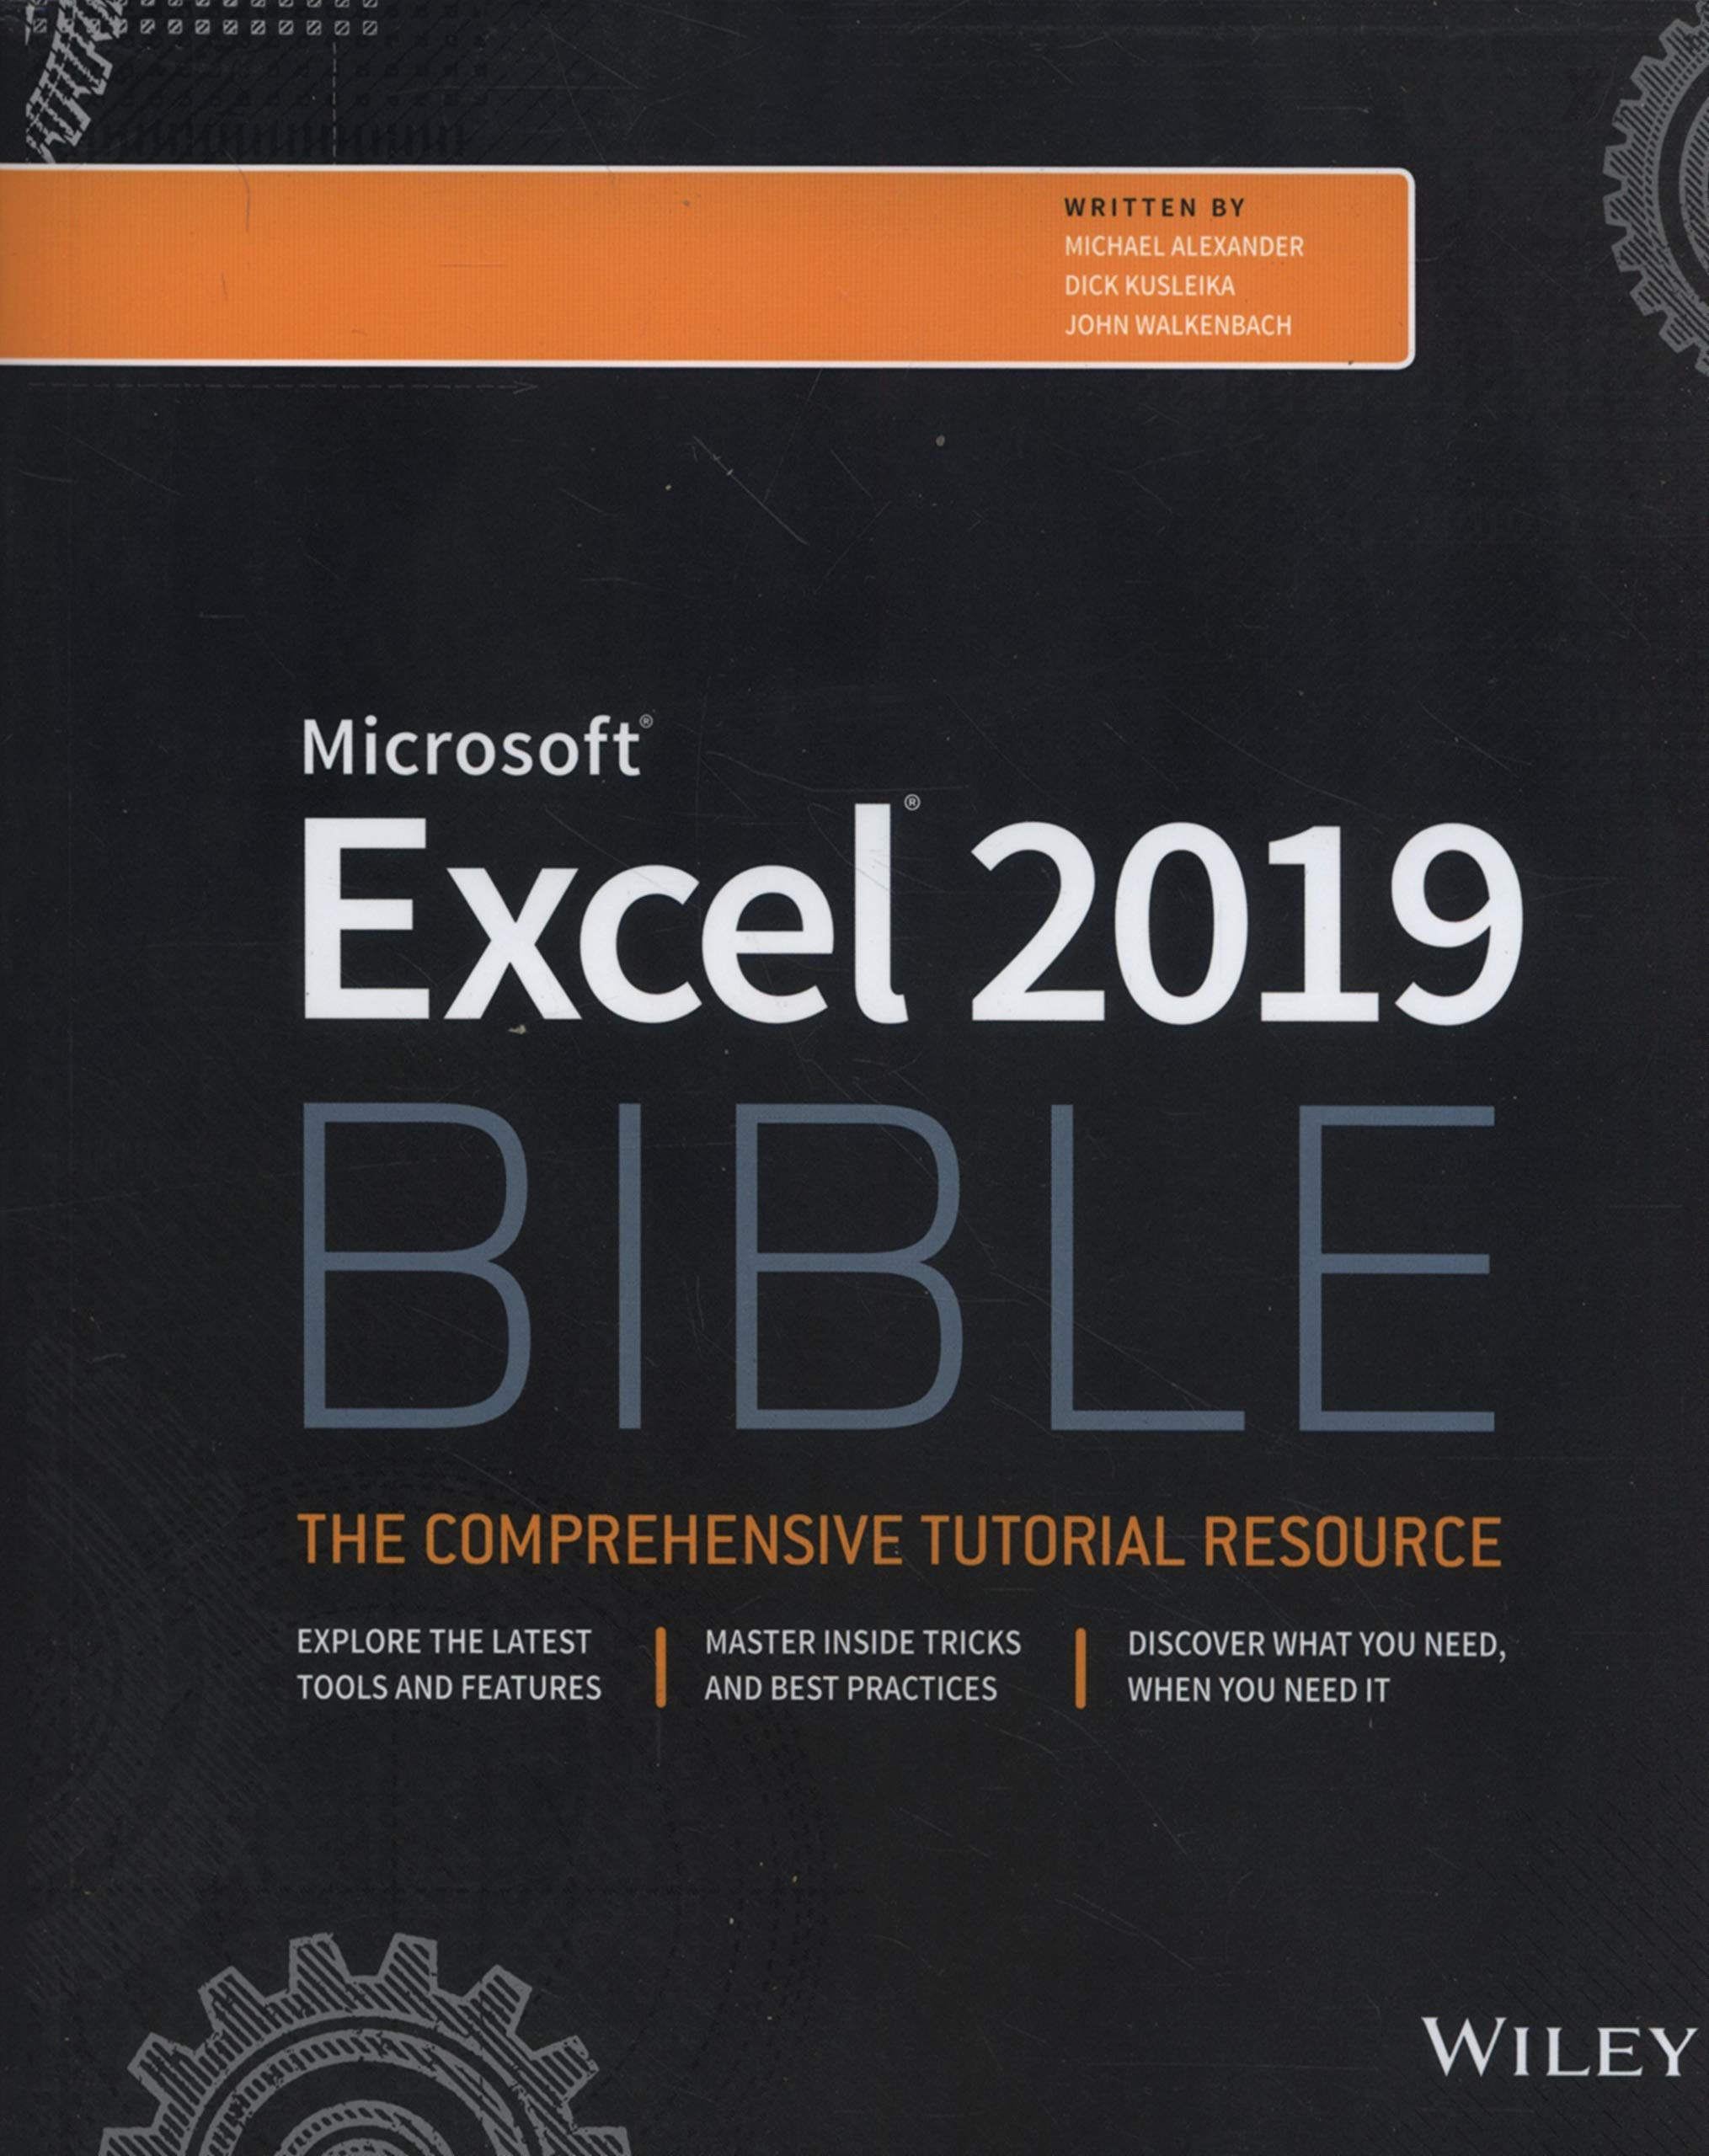 Excel 2019 Bible by Wiley